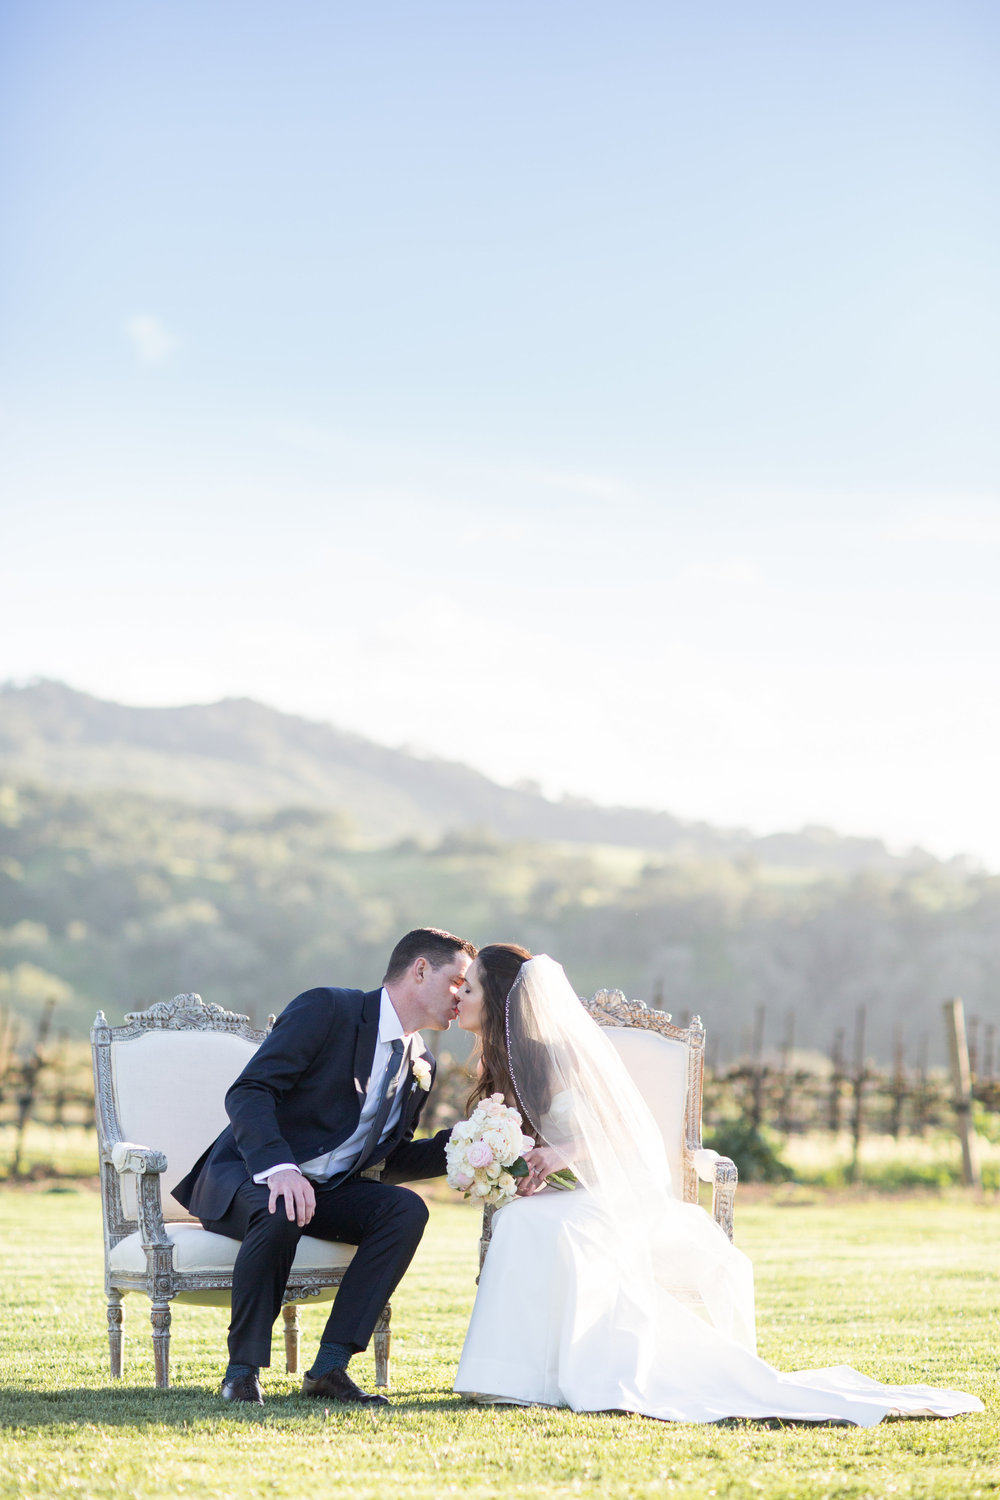 santa-barbara-elopement-wedding-planner-planning-coordinator-event-day-of-sunstone-winery-villa-tuscan-vineyard-gold-classic-elope (7).jpg